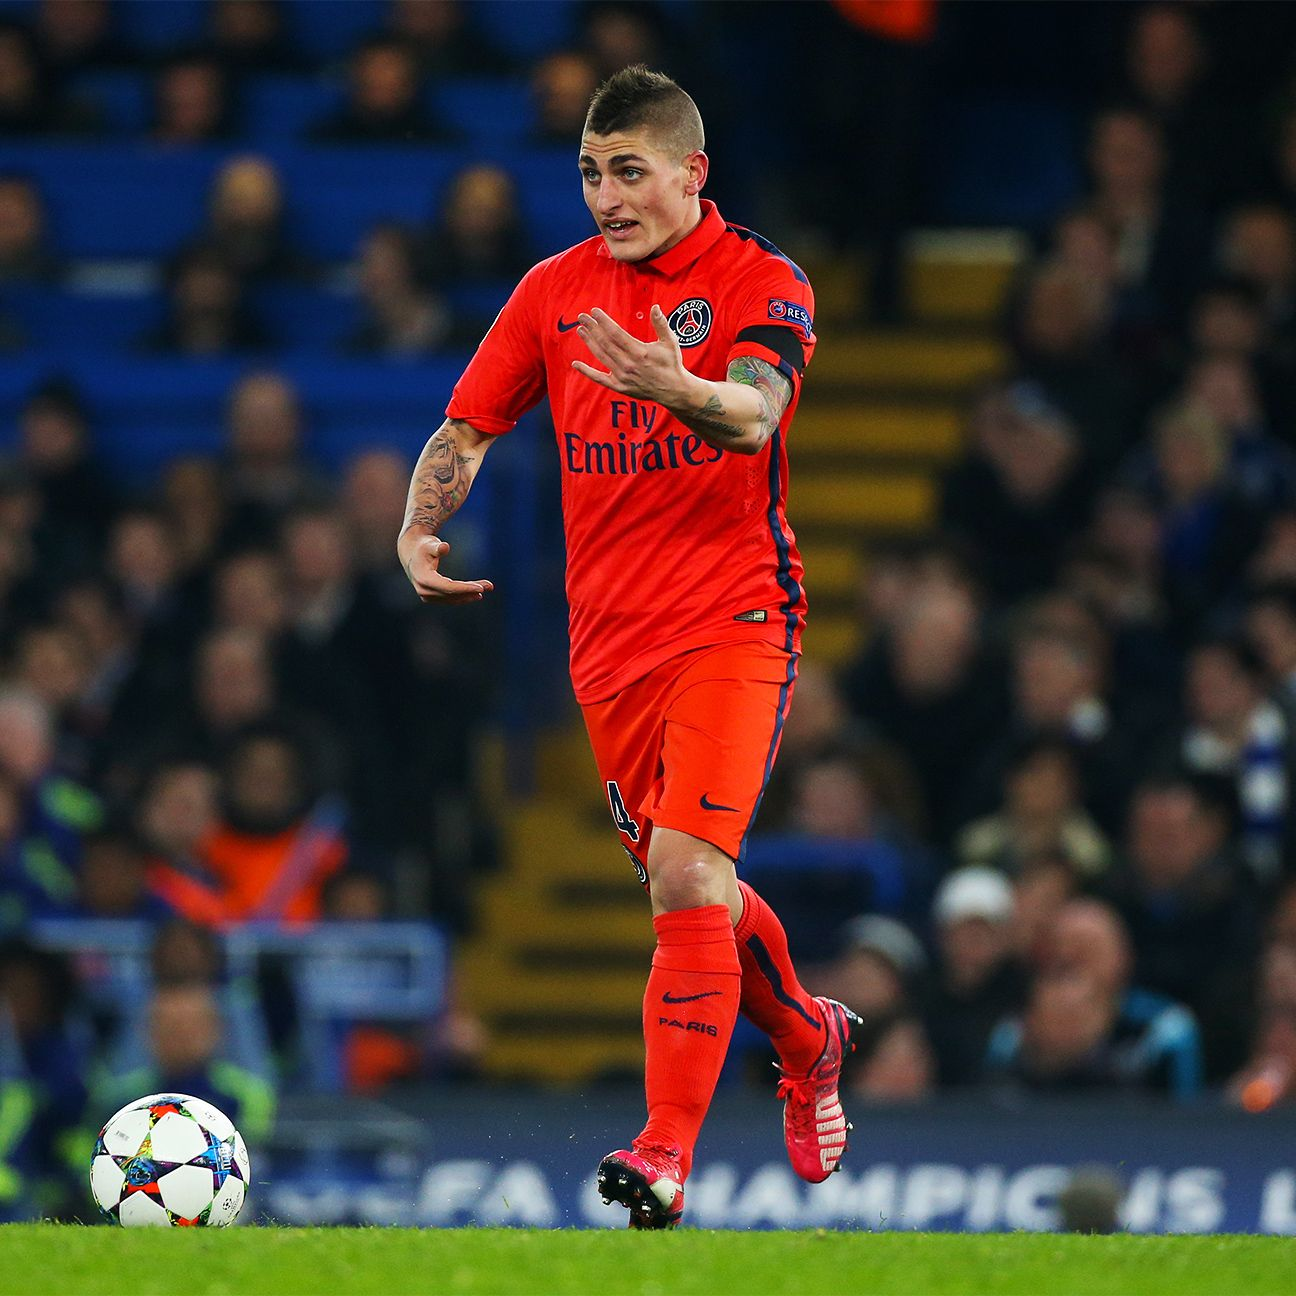 Marco Verratti would add some verve to the Milan midfield.